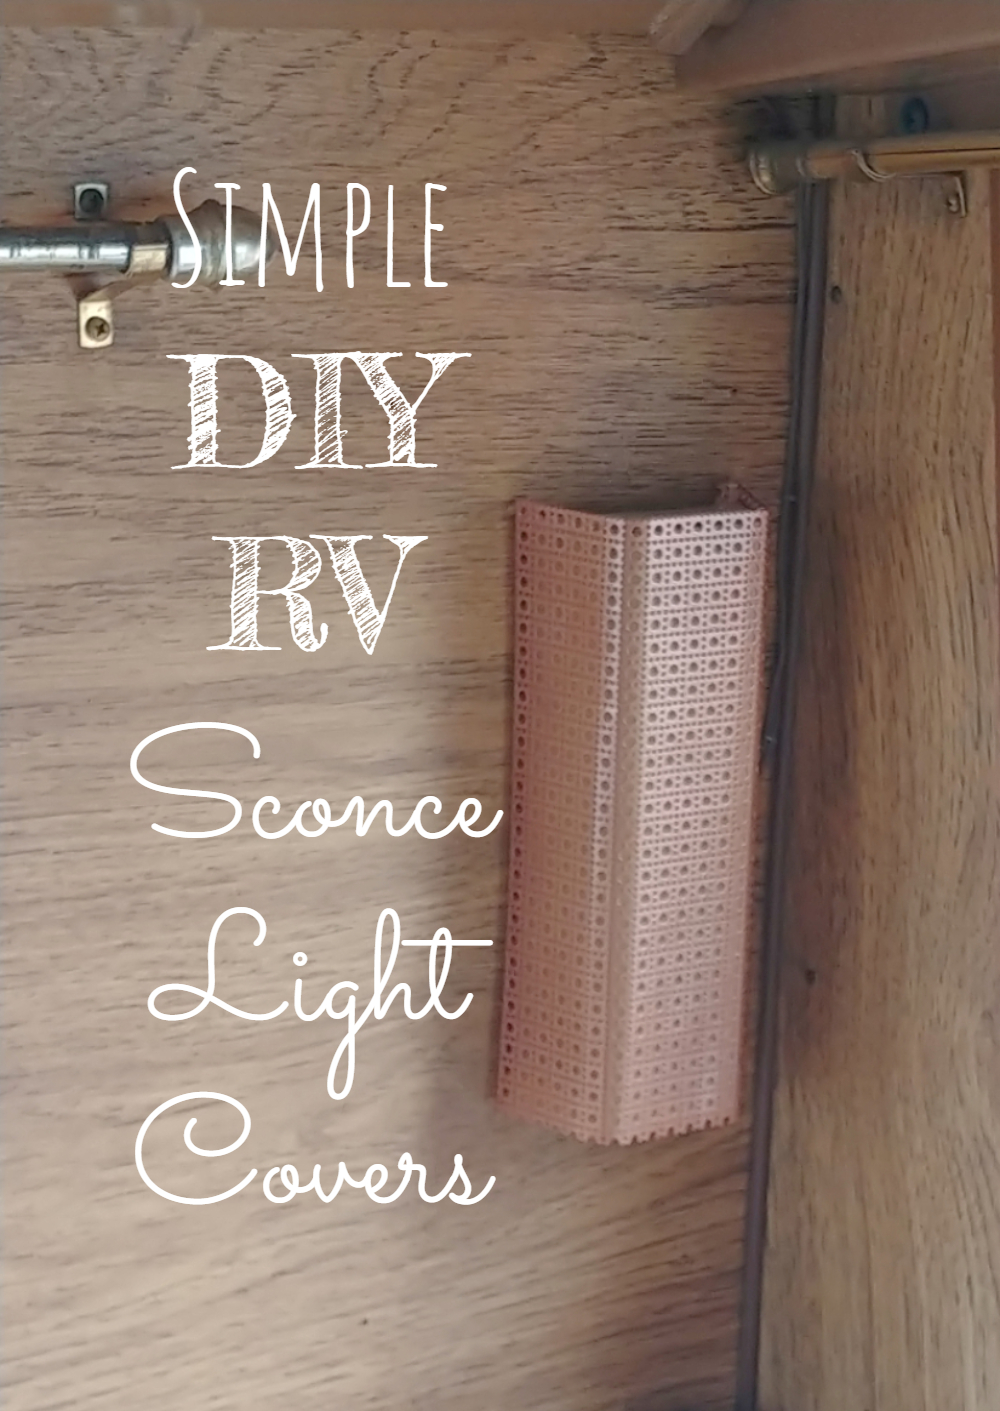 Simple DIY RV Sconce Light Covers